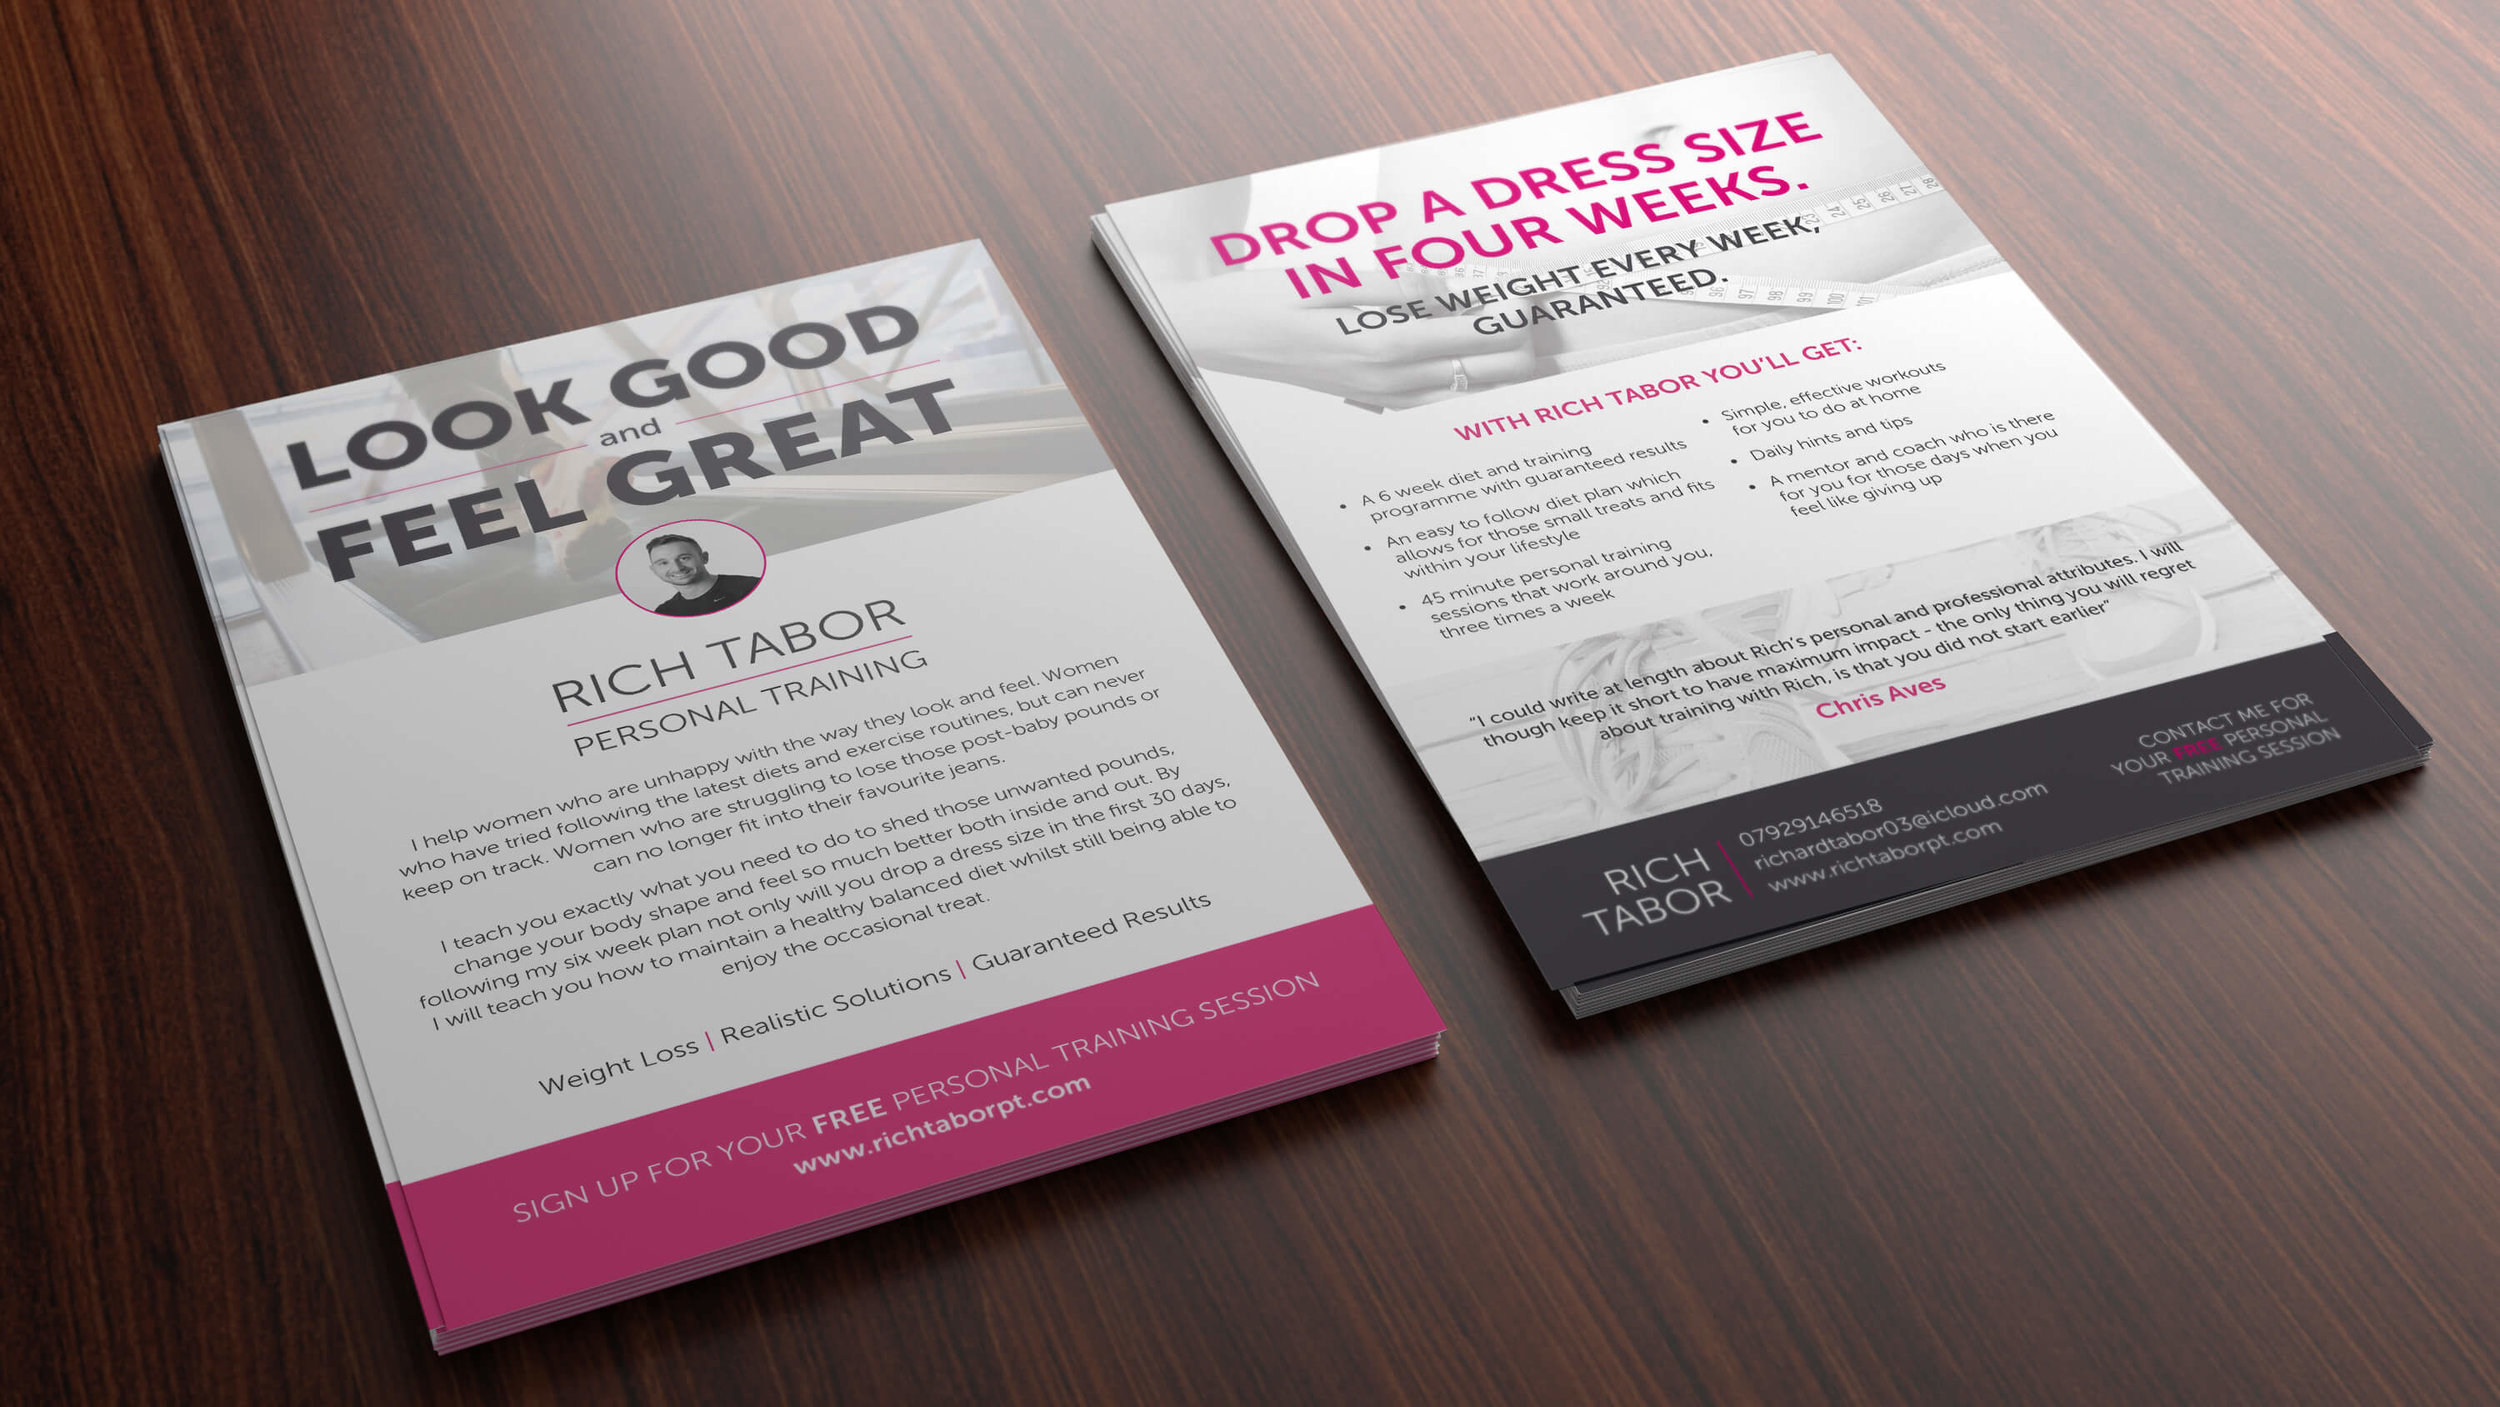 Promotional Material for   Rich Tabor   Personal Trainer